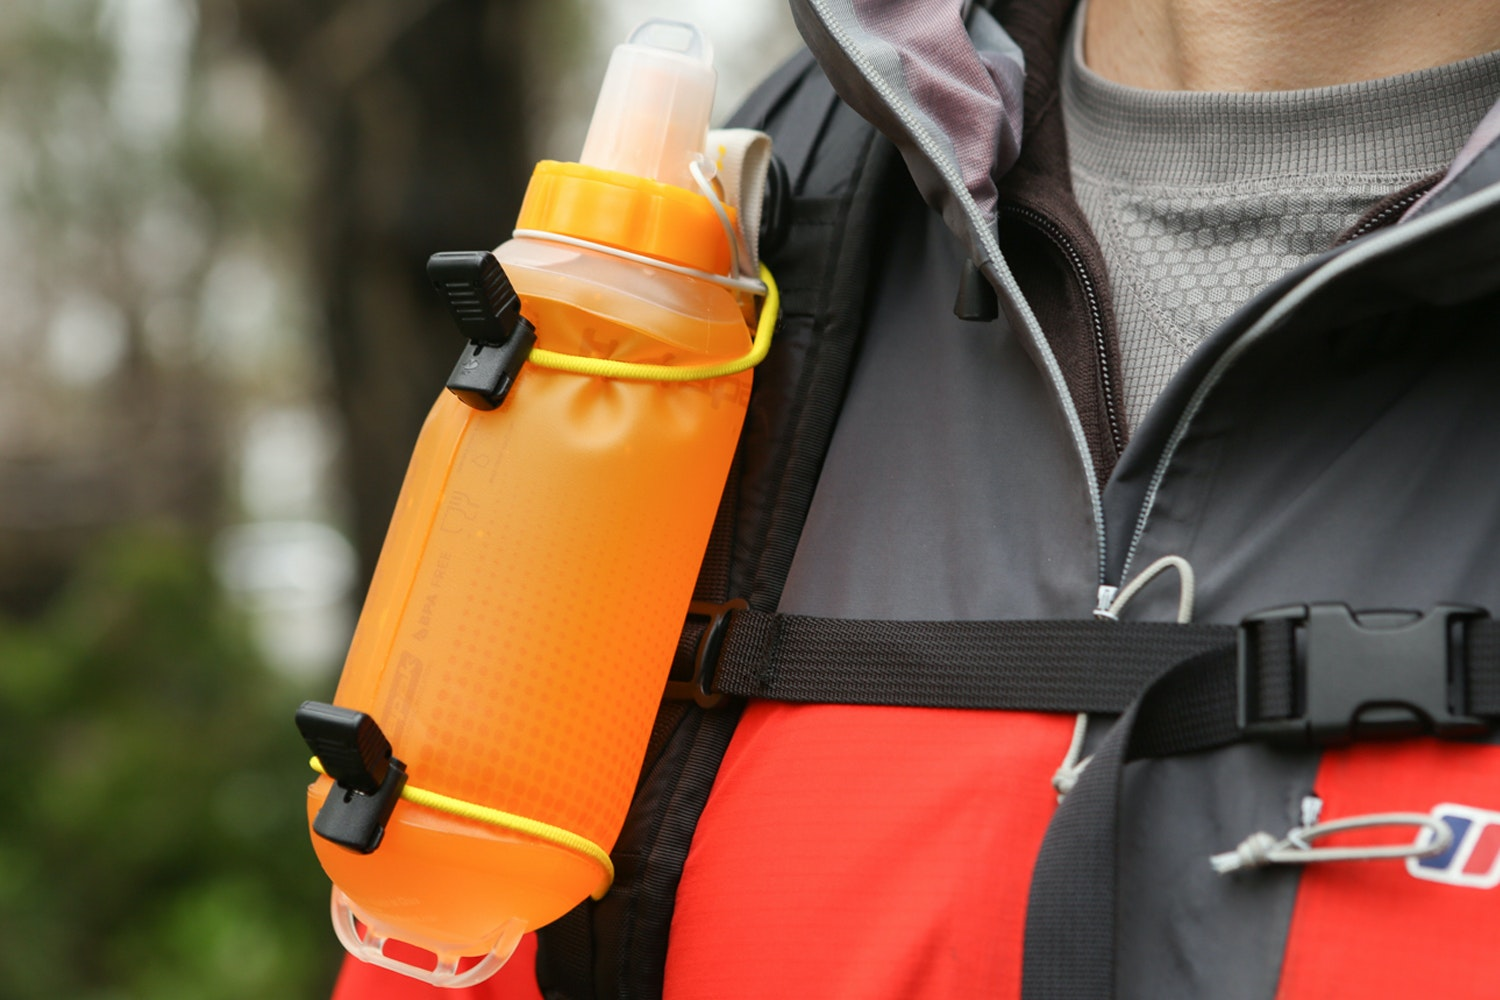 Removable water bottle straps